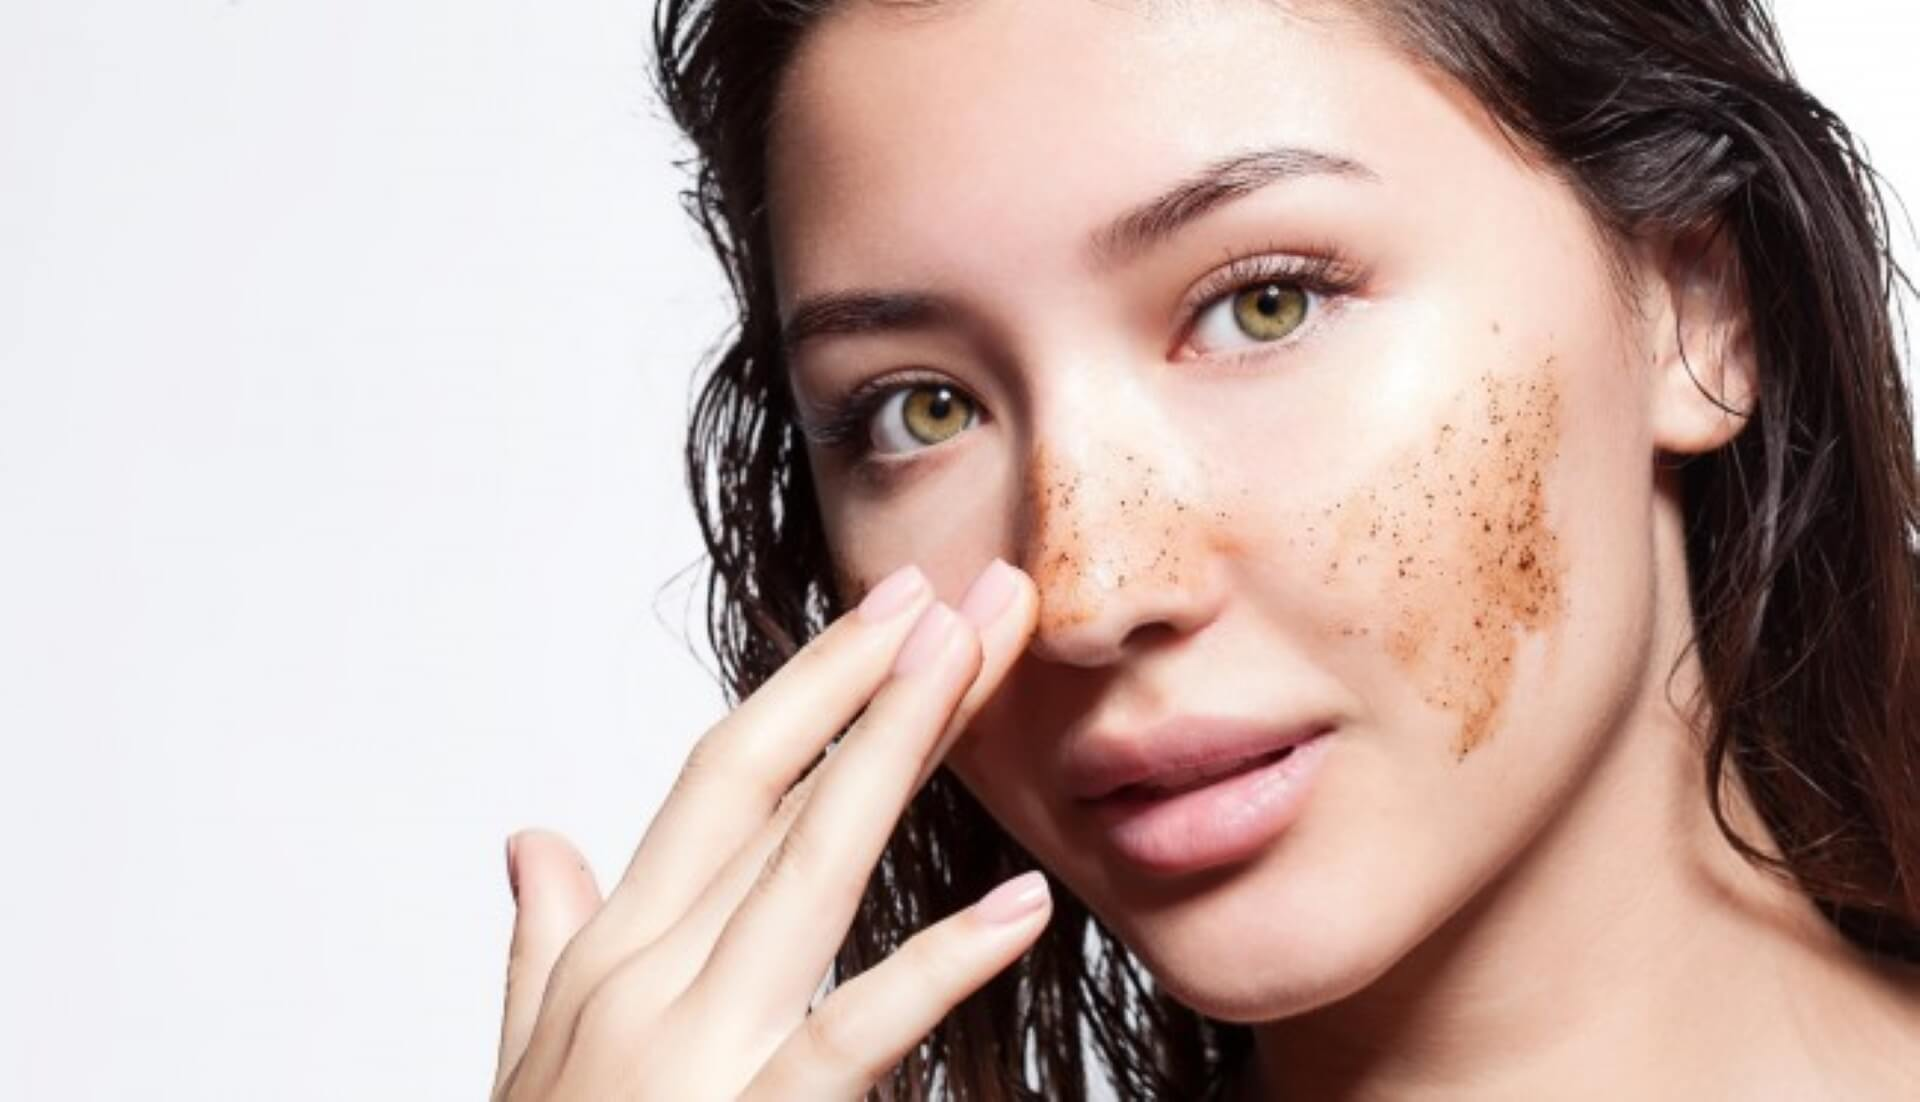 Recipes for Homemade All-Natural Face Masks